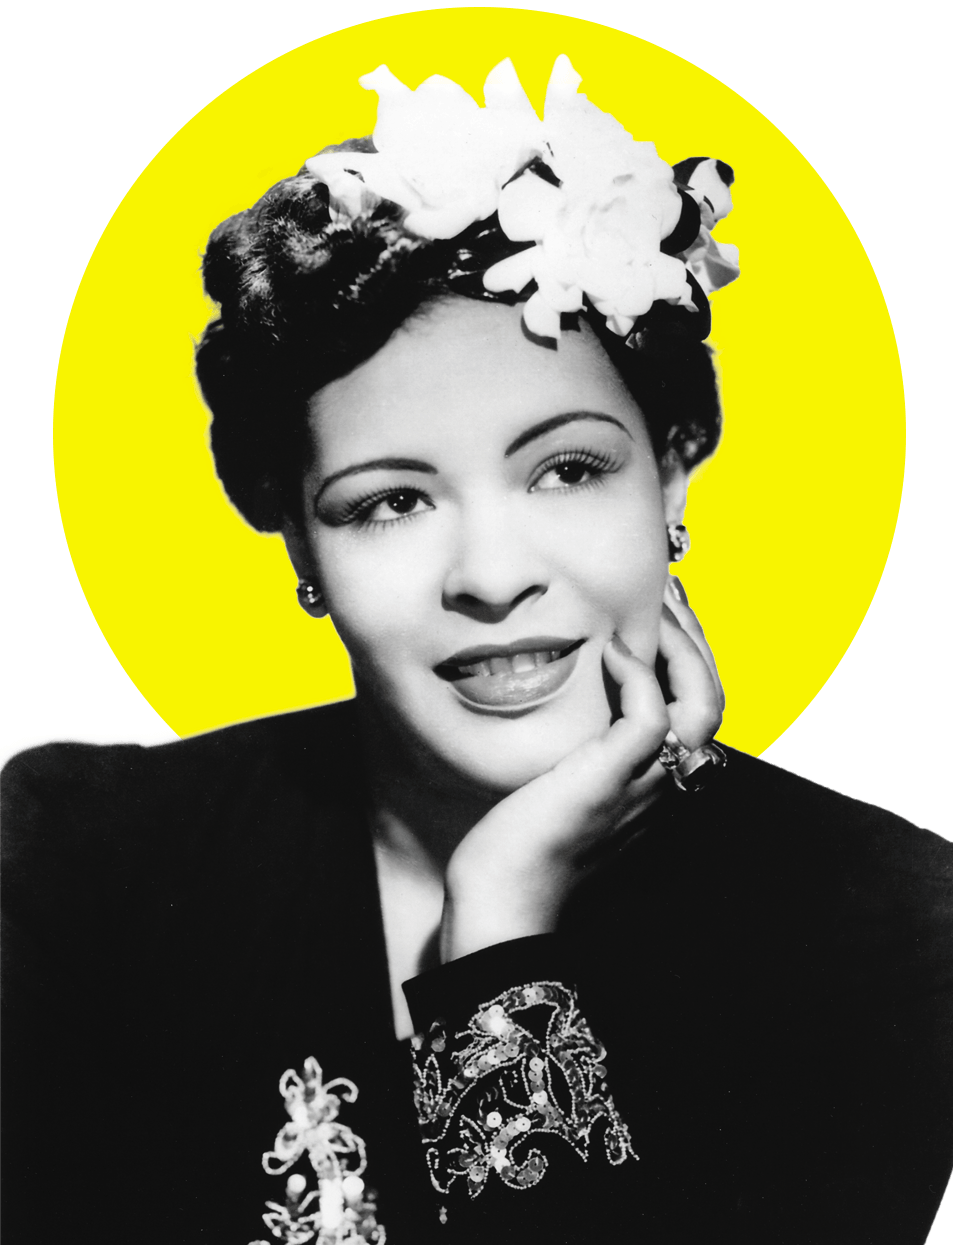 billie holiday - photo #19